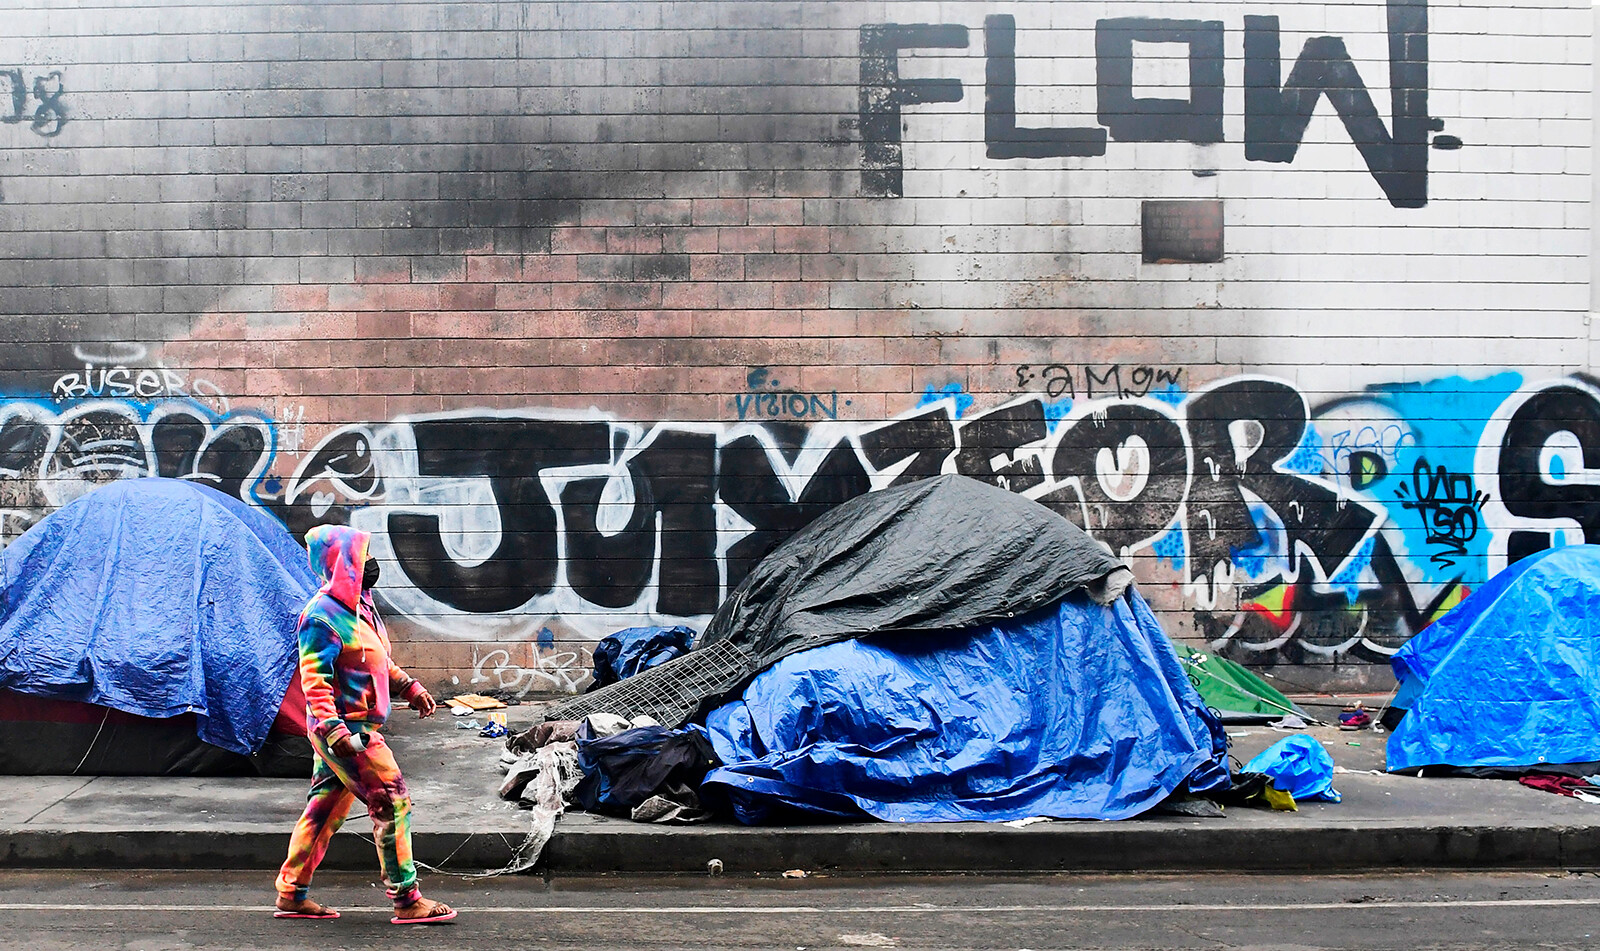 What California's homelessness crisis has to do with the recall effort against Gavin Newsom